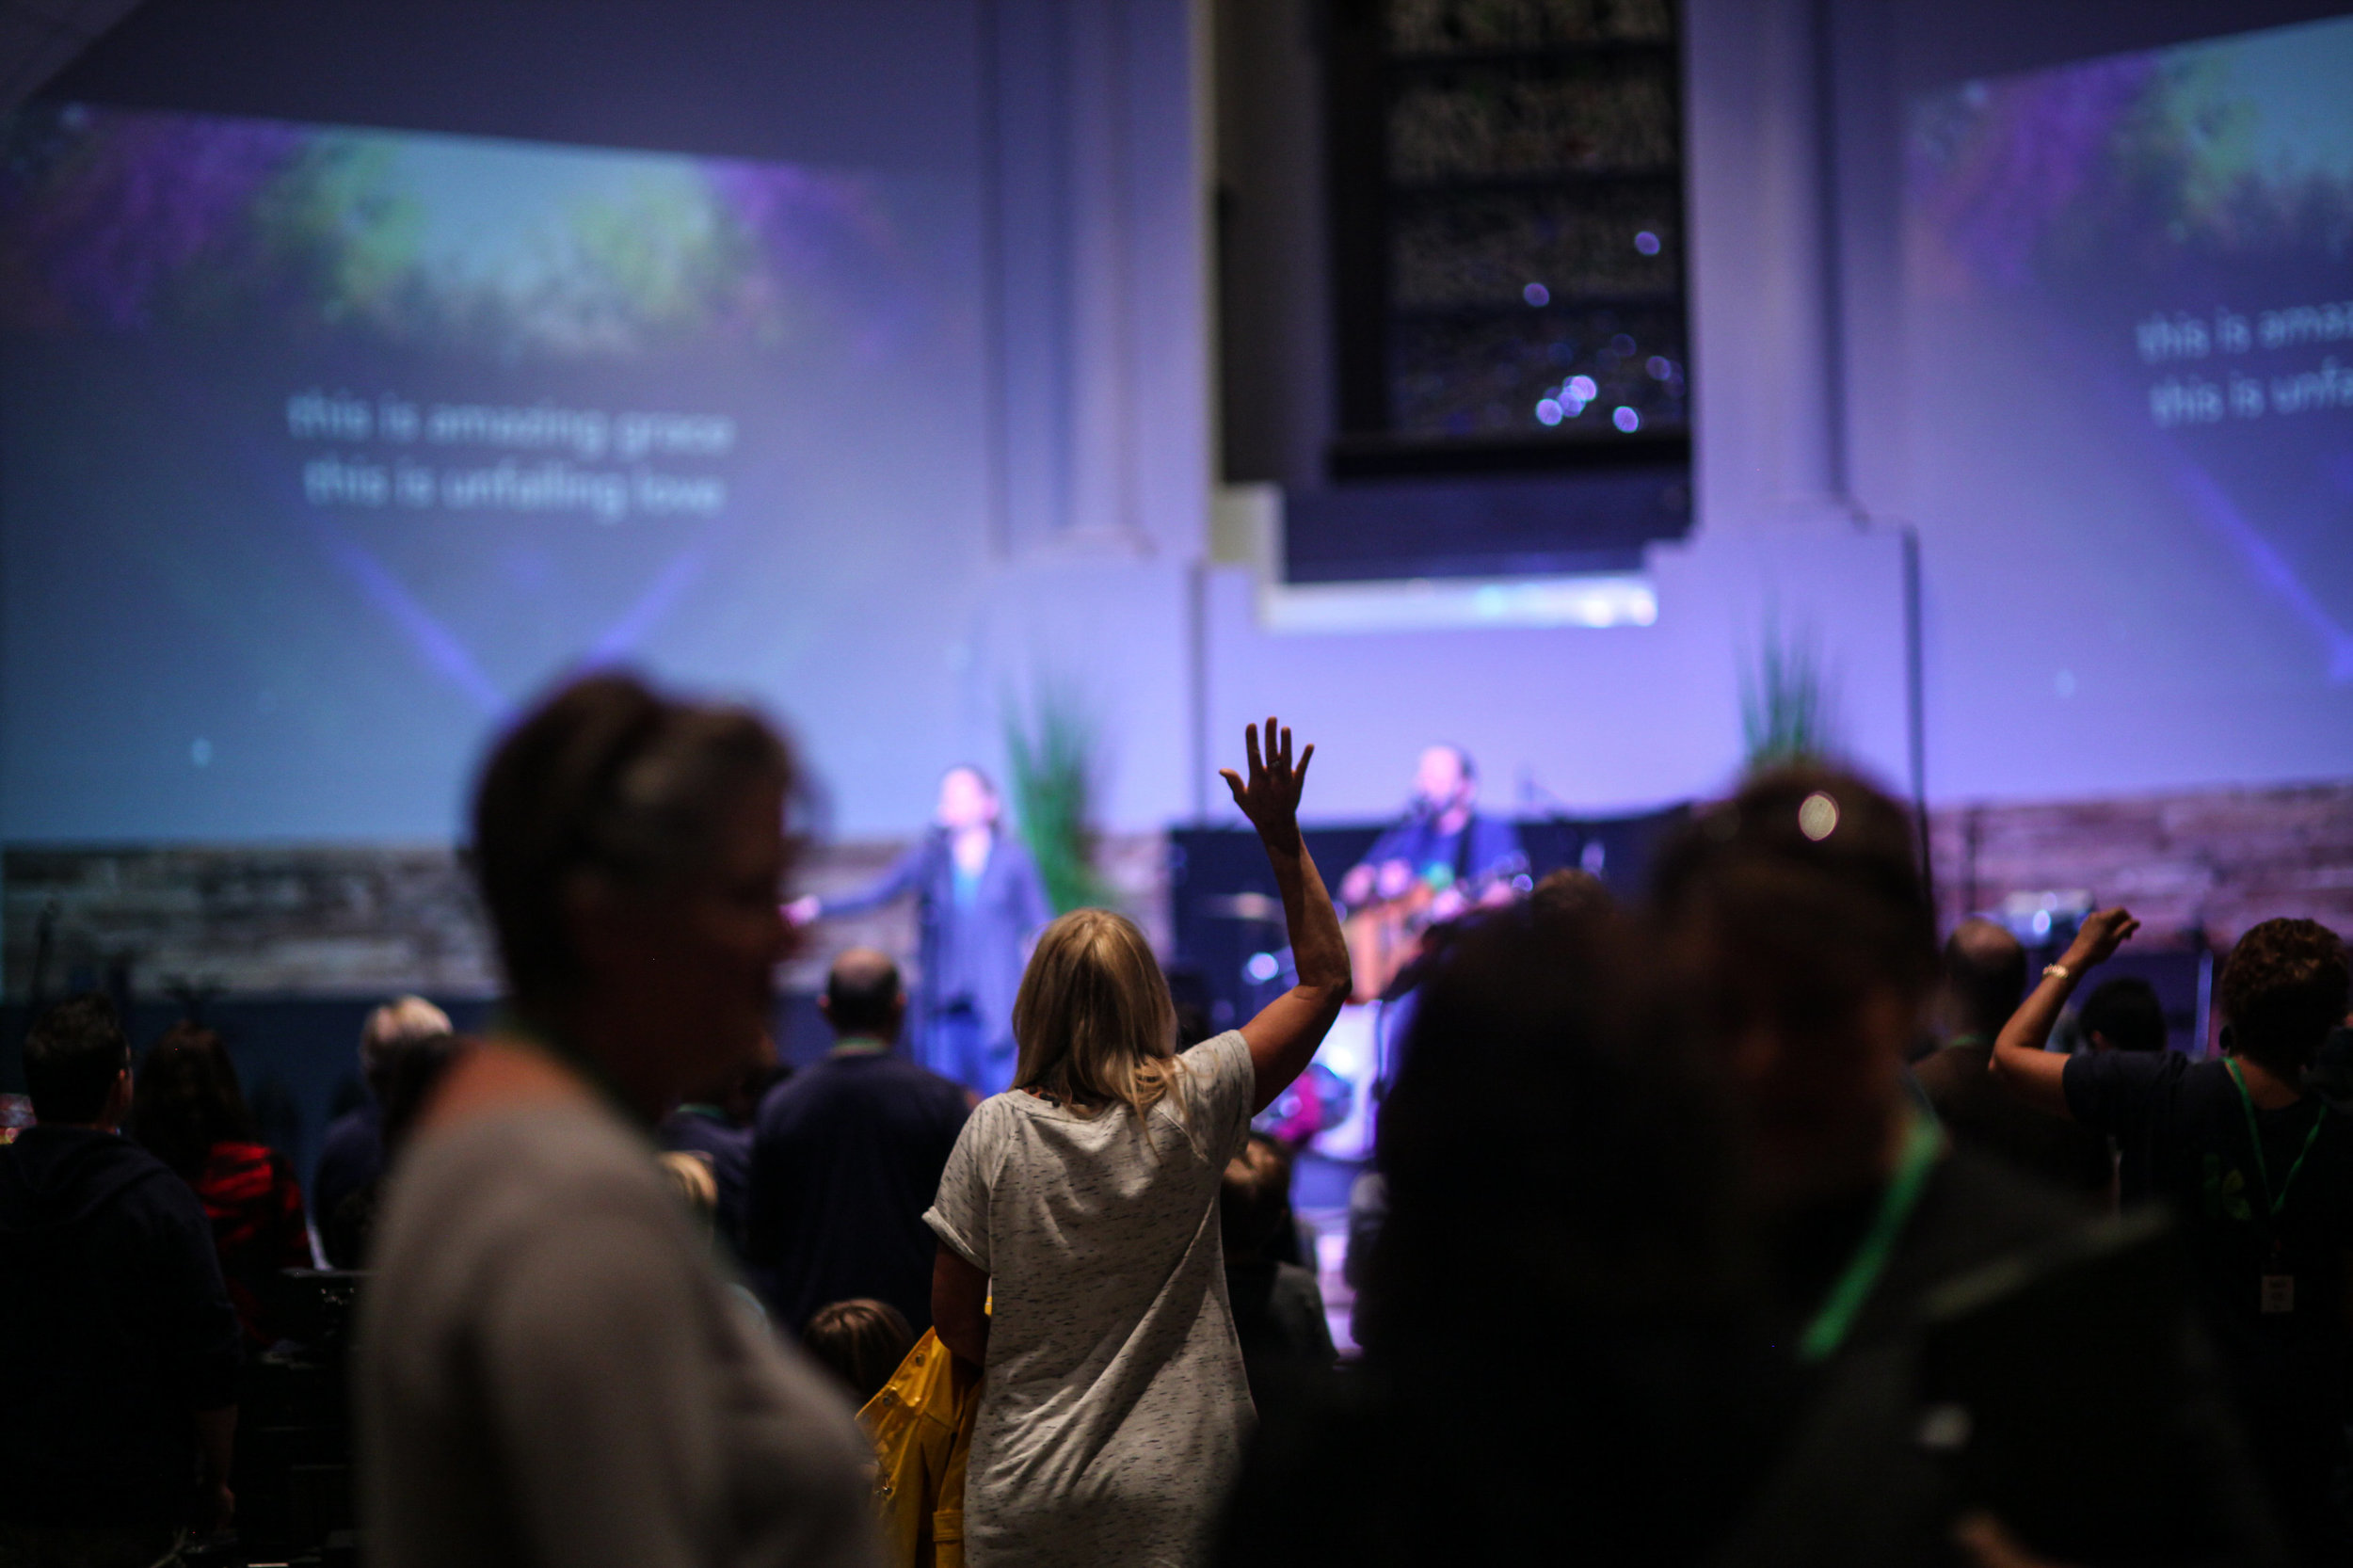 Annual Gatherings - The Annual Gatherings are yearly conferences culminating the year's theme & casting vision for the next year. This 1-day conference serves everyone in our association. We have worship, breakout sessions, a keynote session, and a ministry fair.